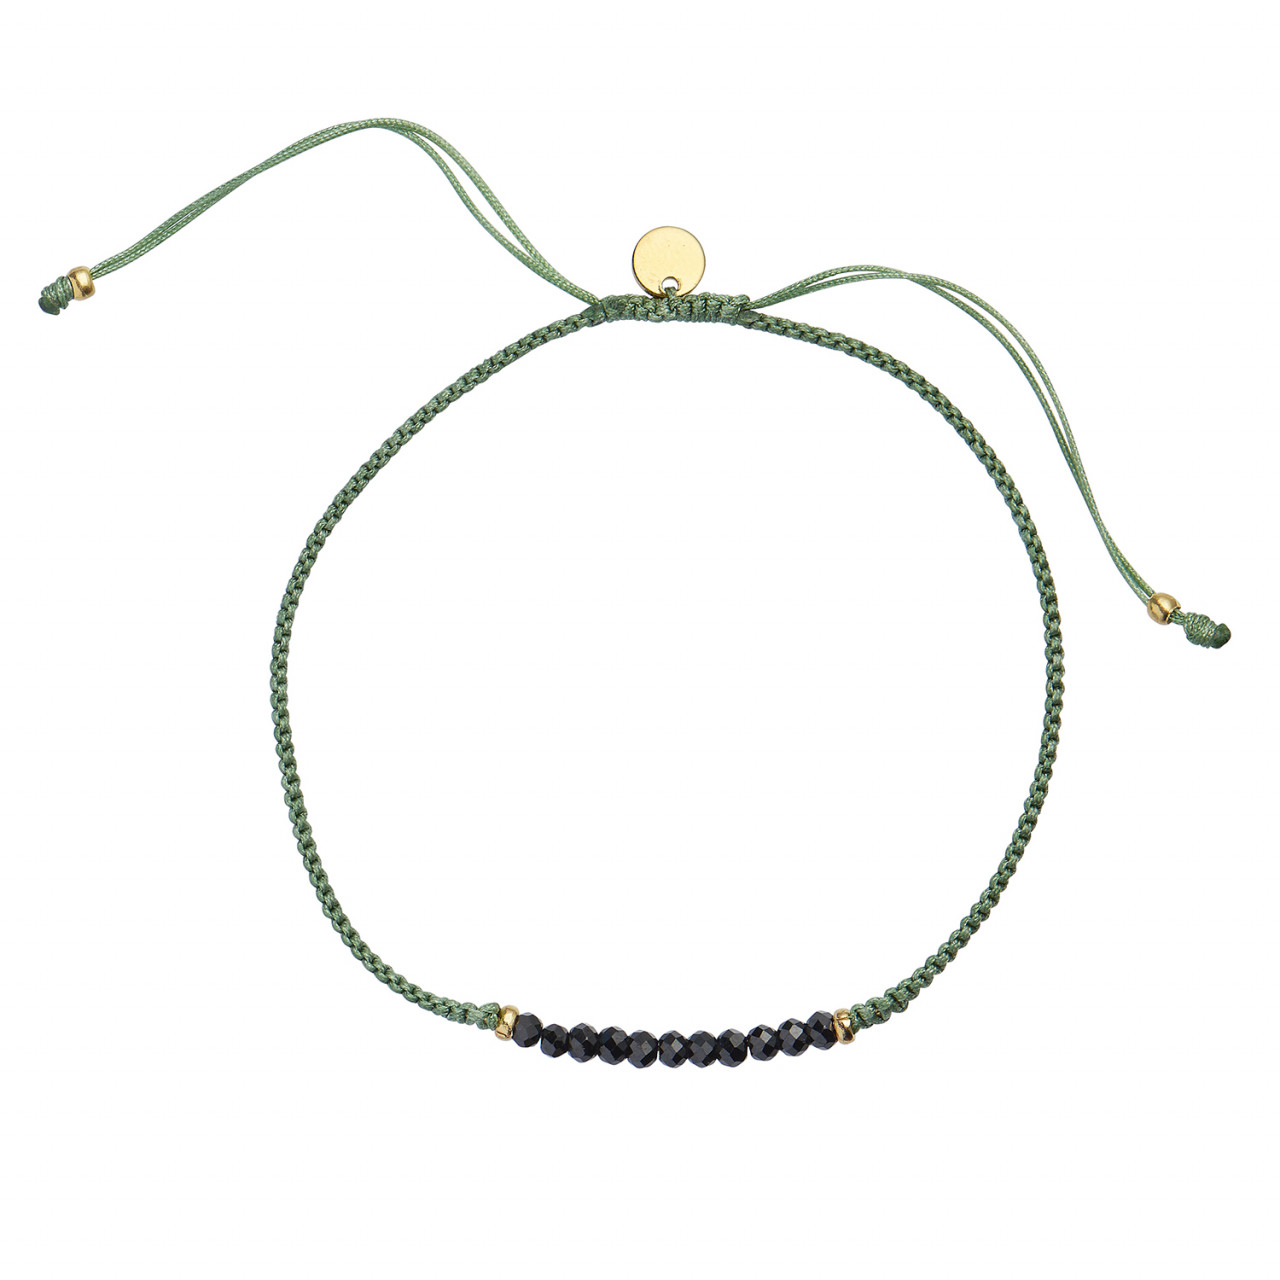 Candy Bracelet - Black Spinel and Dusty Green Ribbon